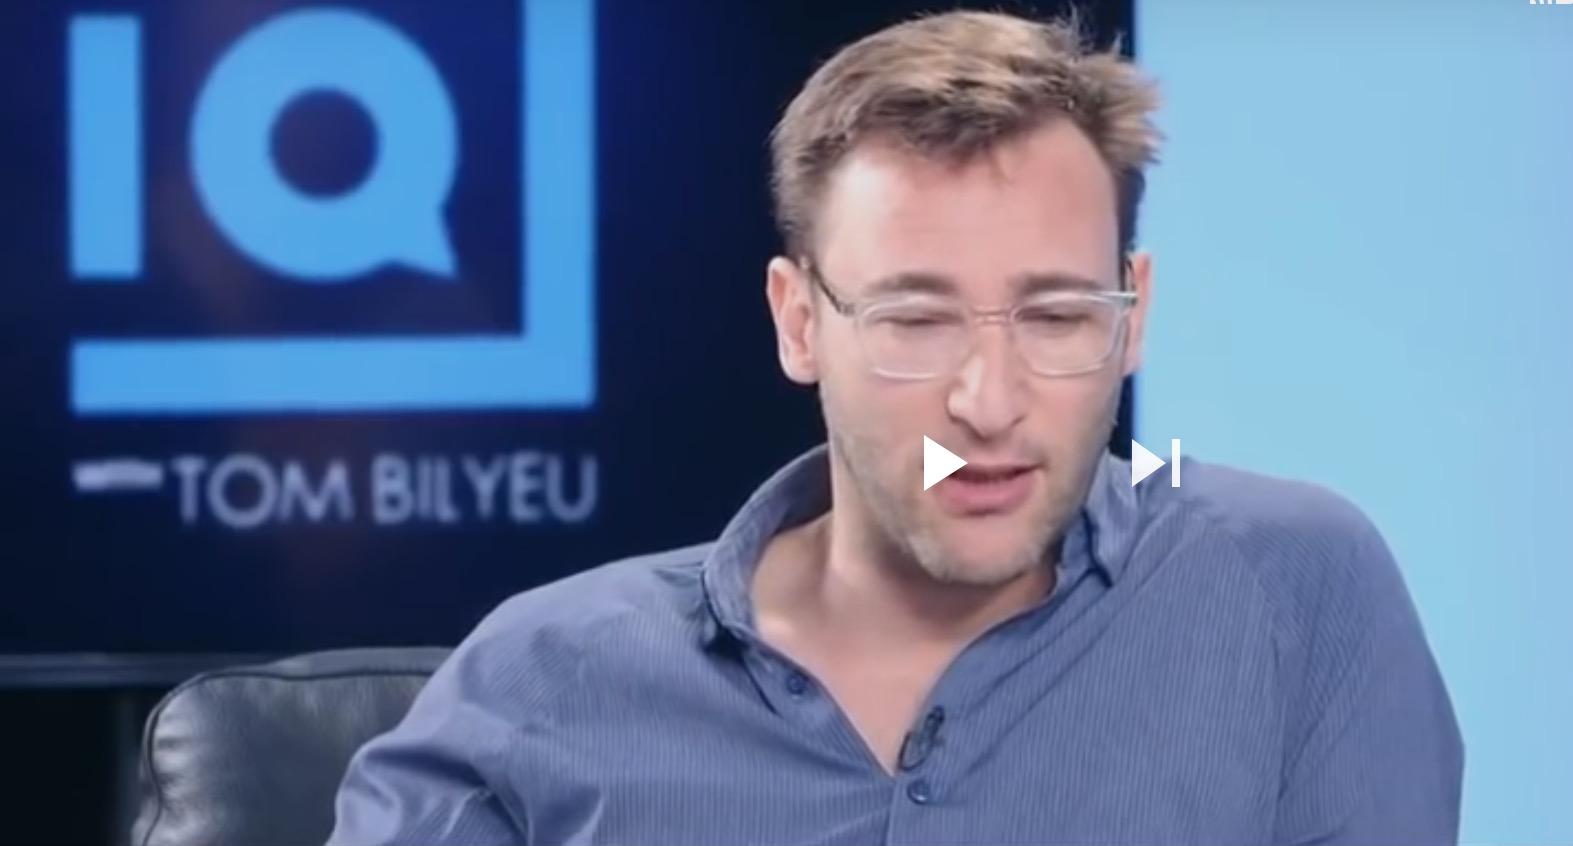 Simon Sinek's eloquent but provocative take on Millennials [VIDEO]